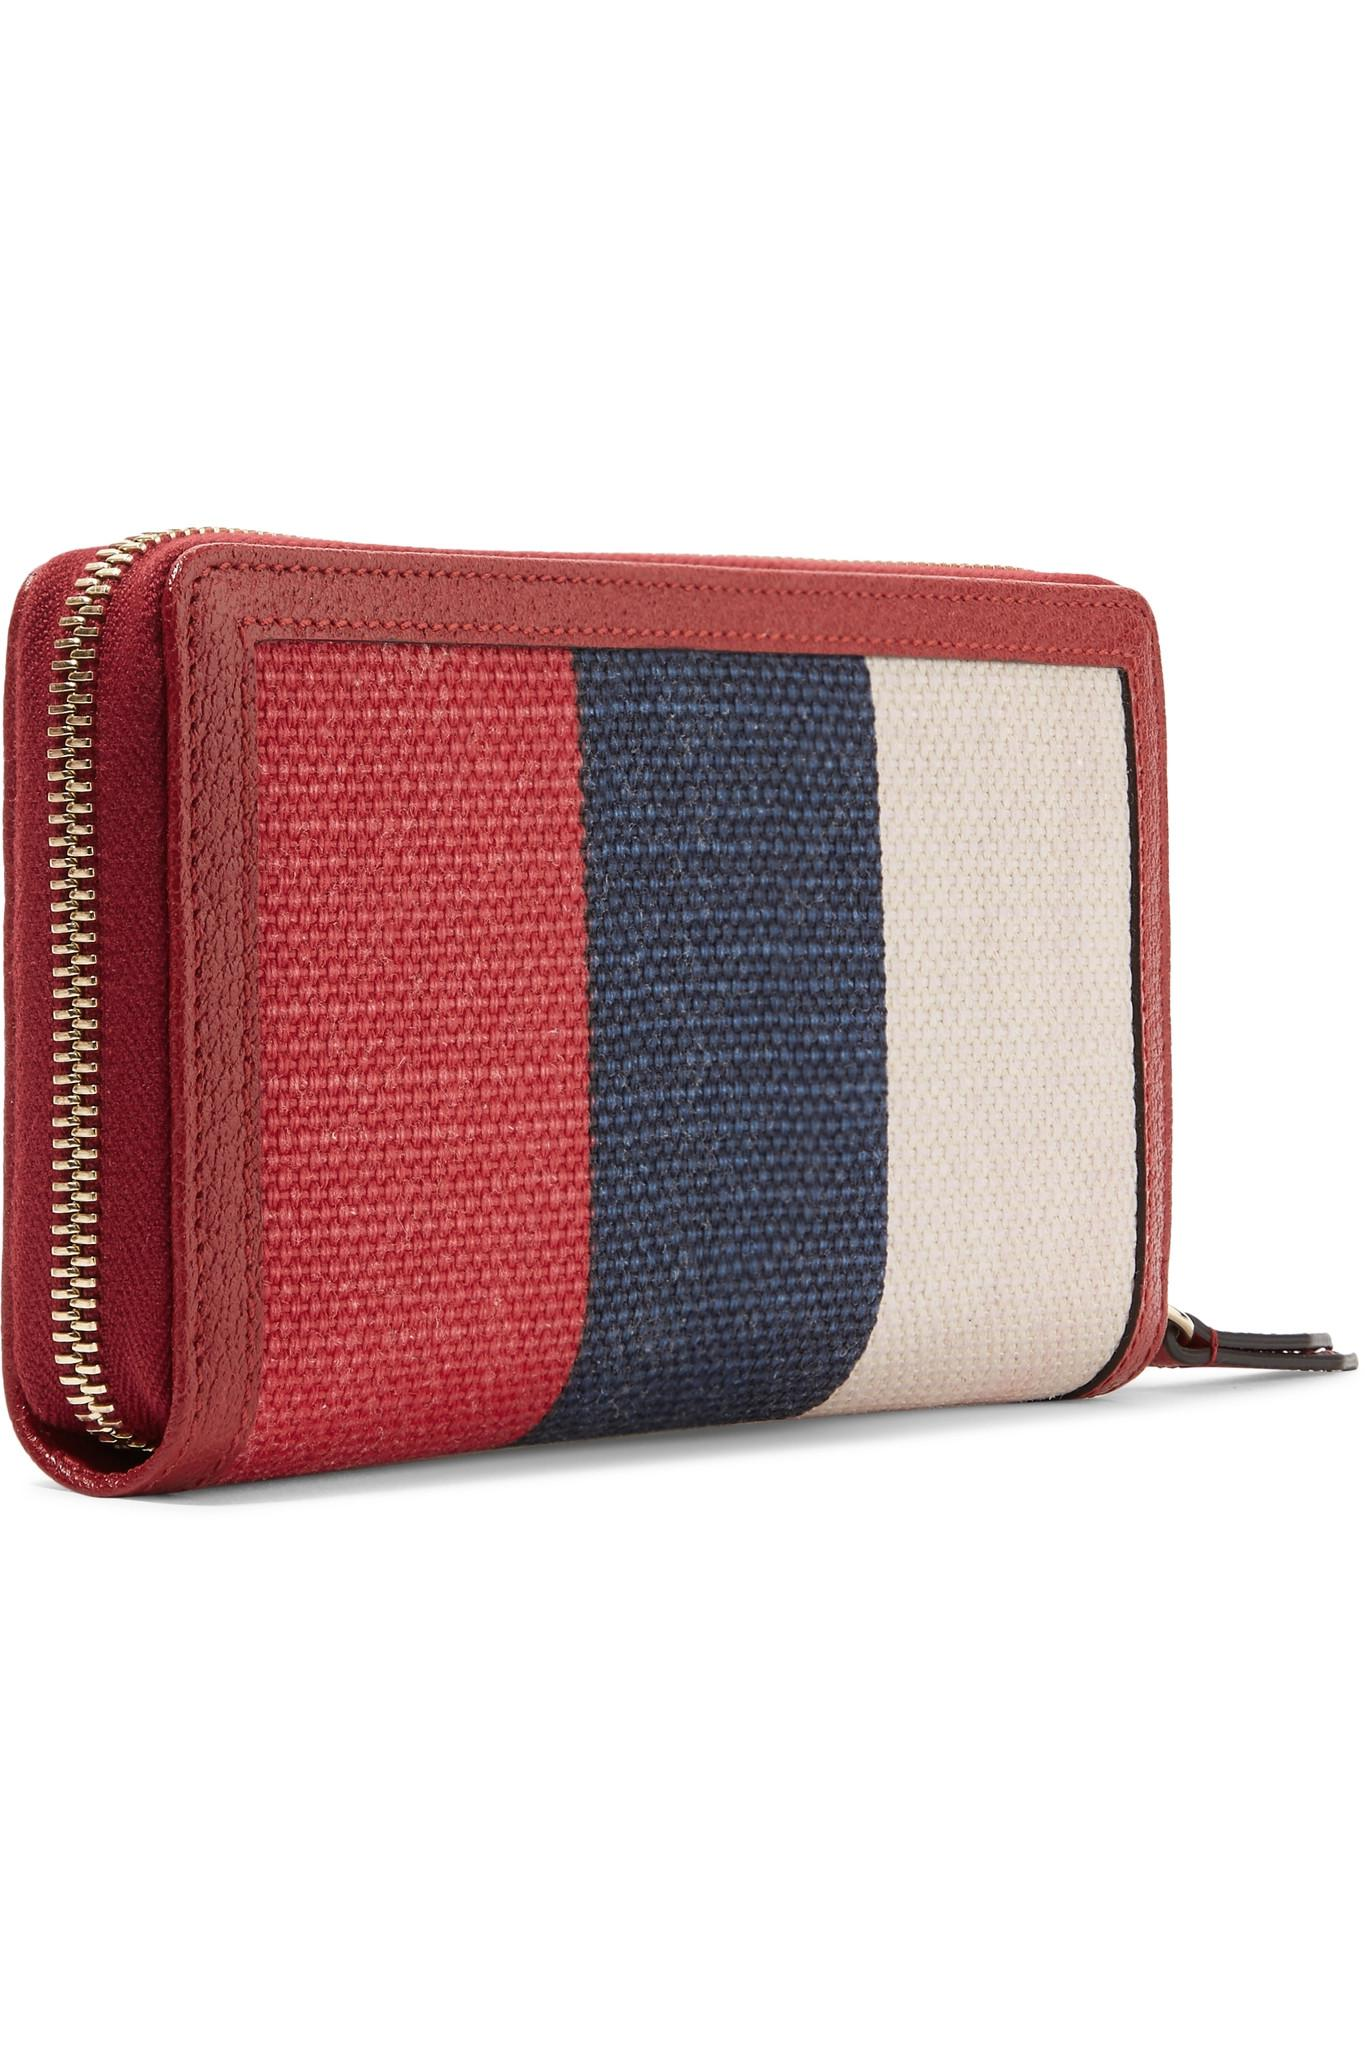 ae6017ced02 Gucci - Textured Leather-trimmed Printed Canvas Wallet - Lyst. View  fullscreen